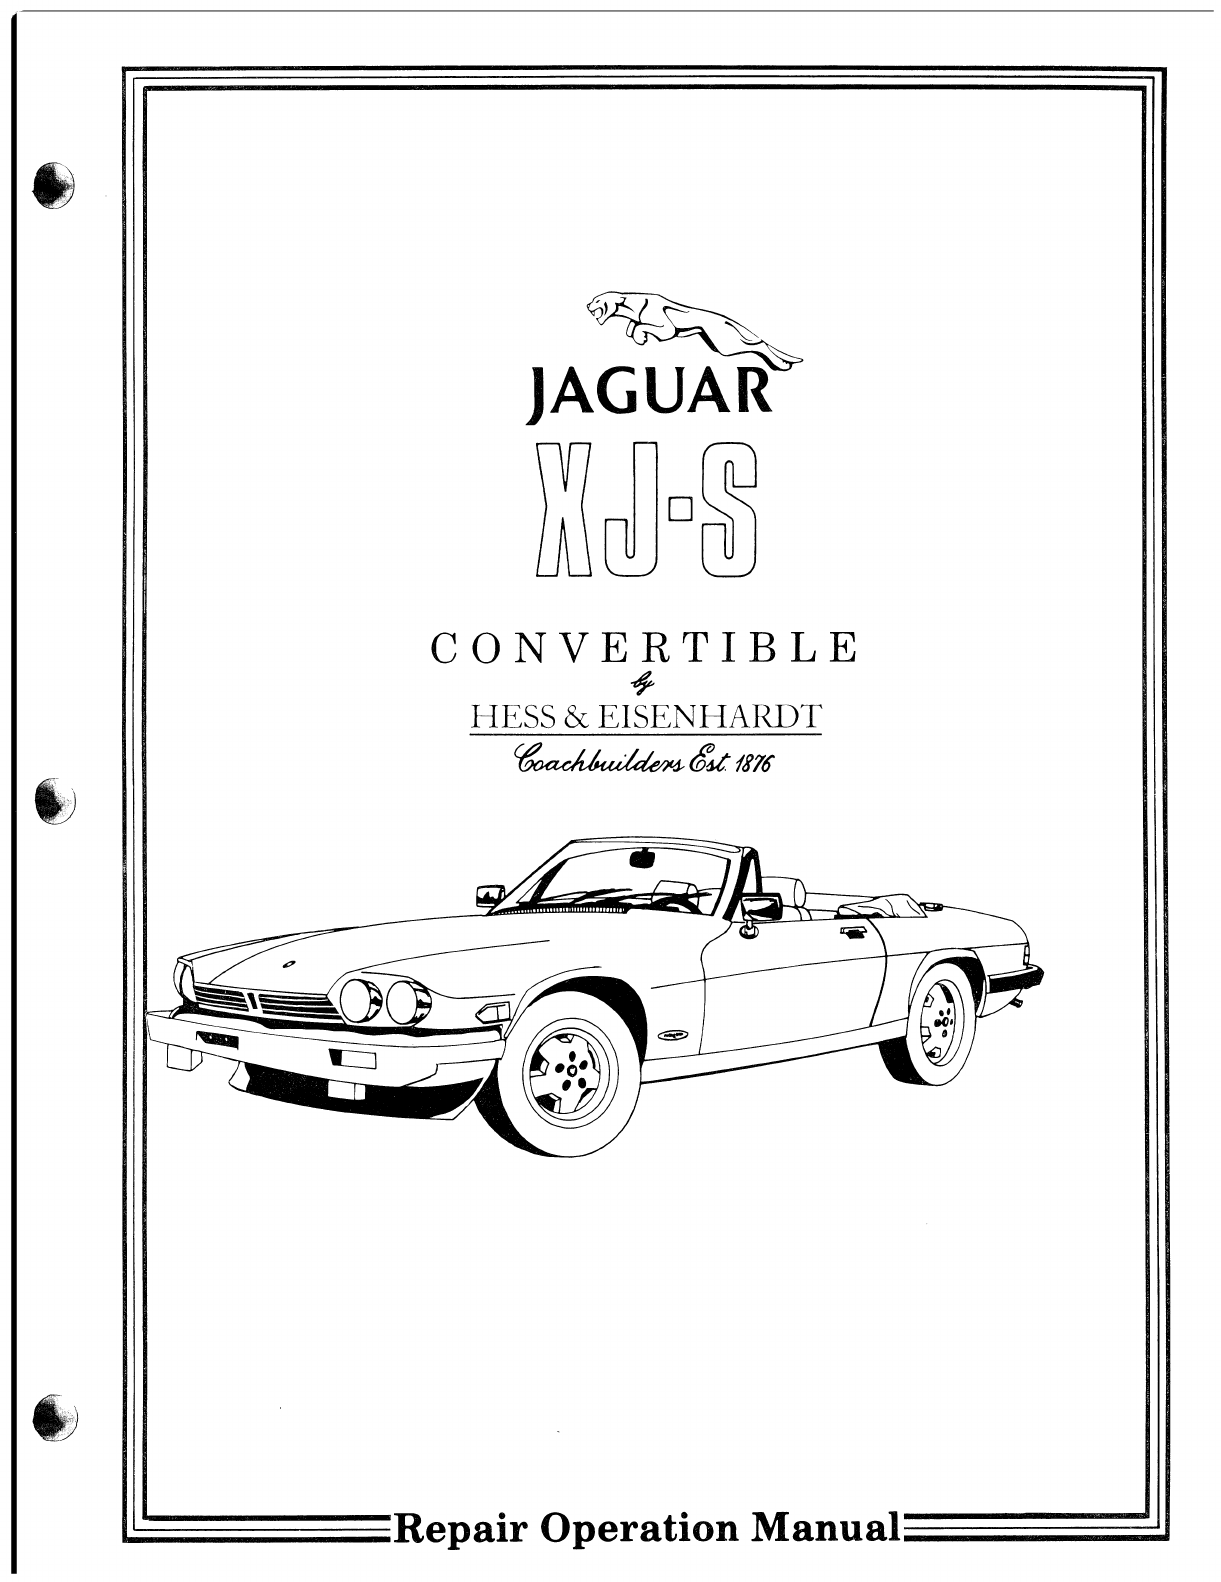 jaguar xjs workshop manual pdf rh manuals co jaguar repair manual free download jaguar repair manuals online